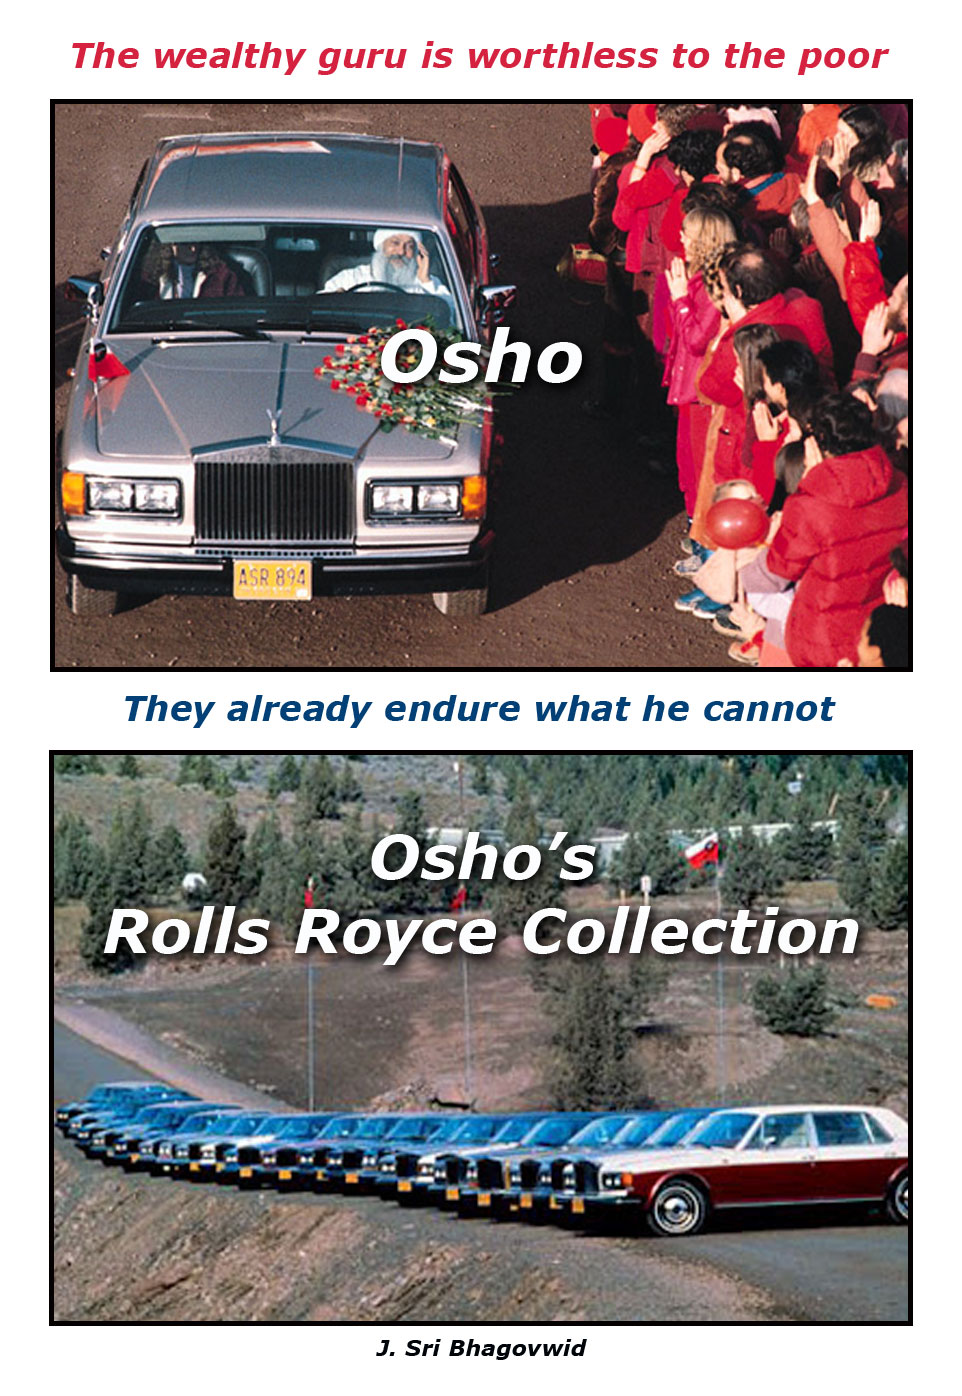 Osho and 90 Rolls Rorces. Rich Guru.